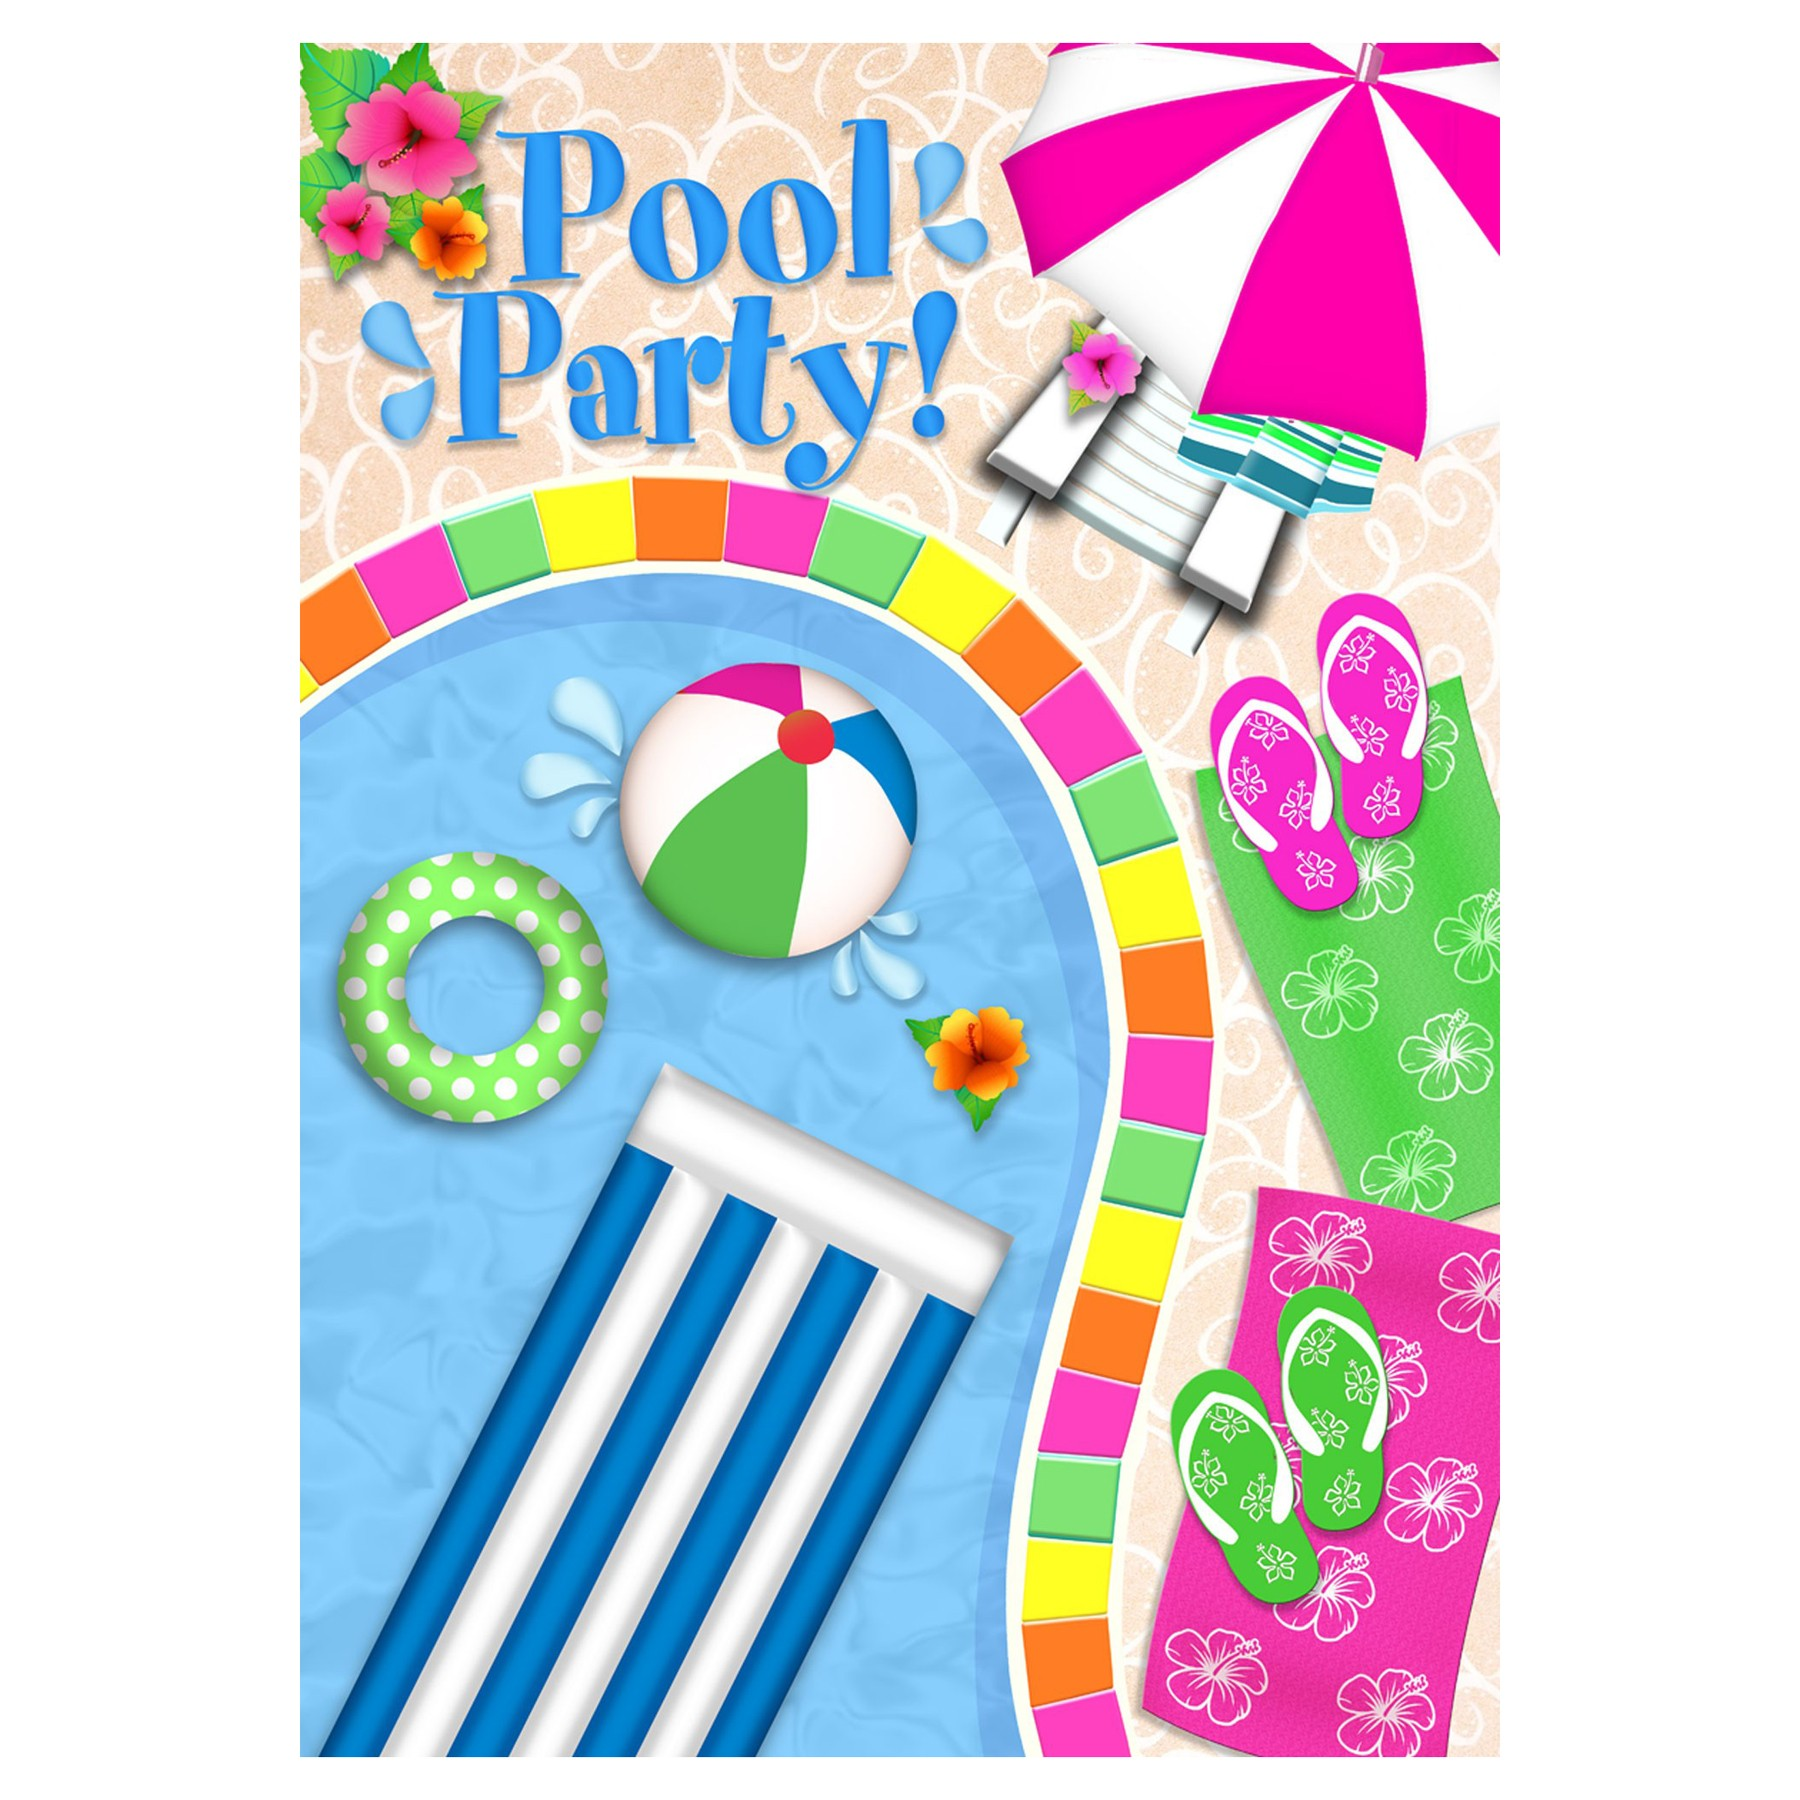 1800x1800 Clipart Swimming Pool Party